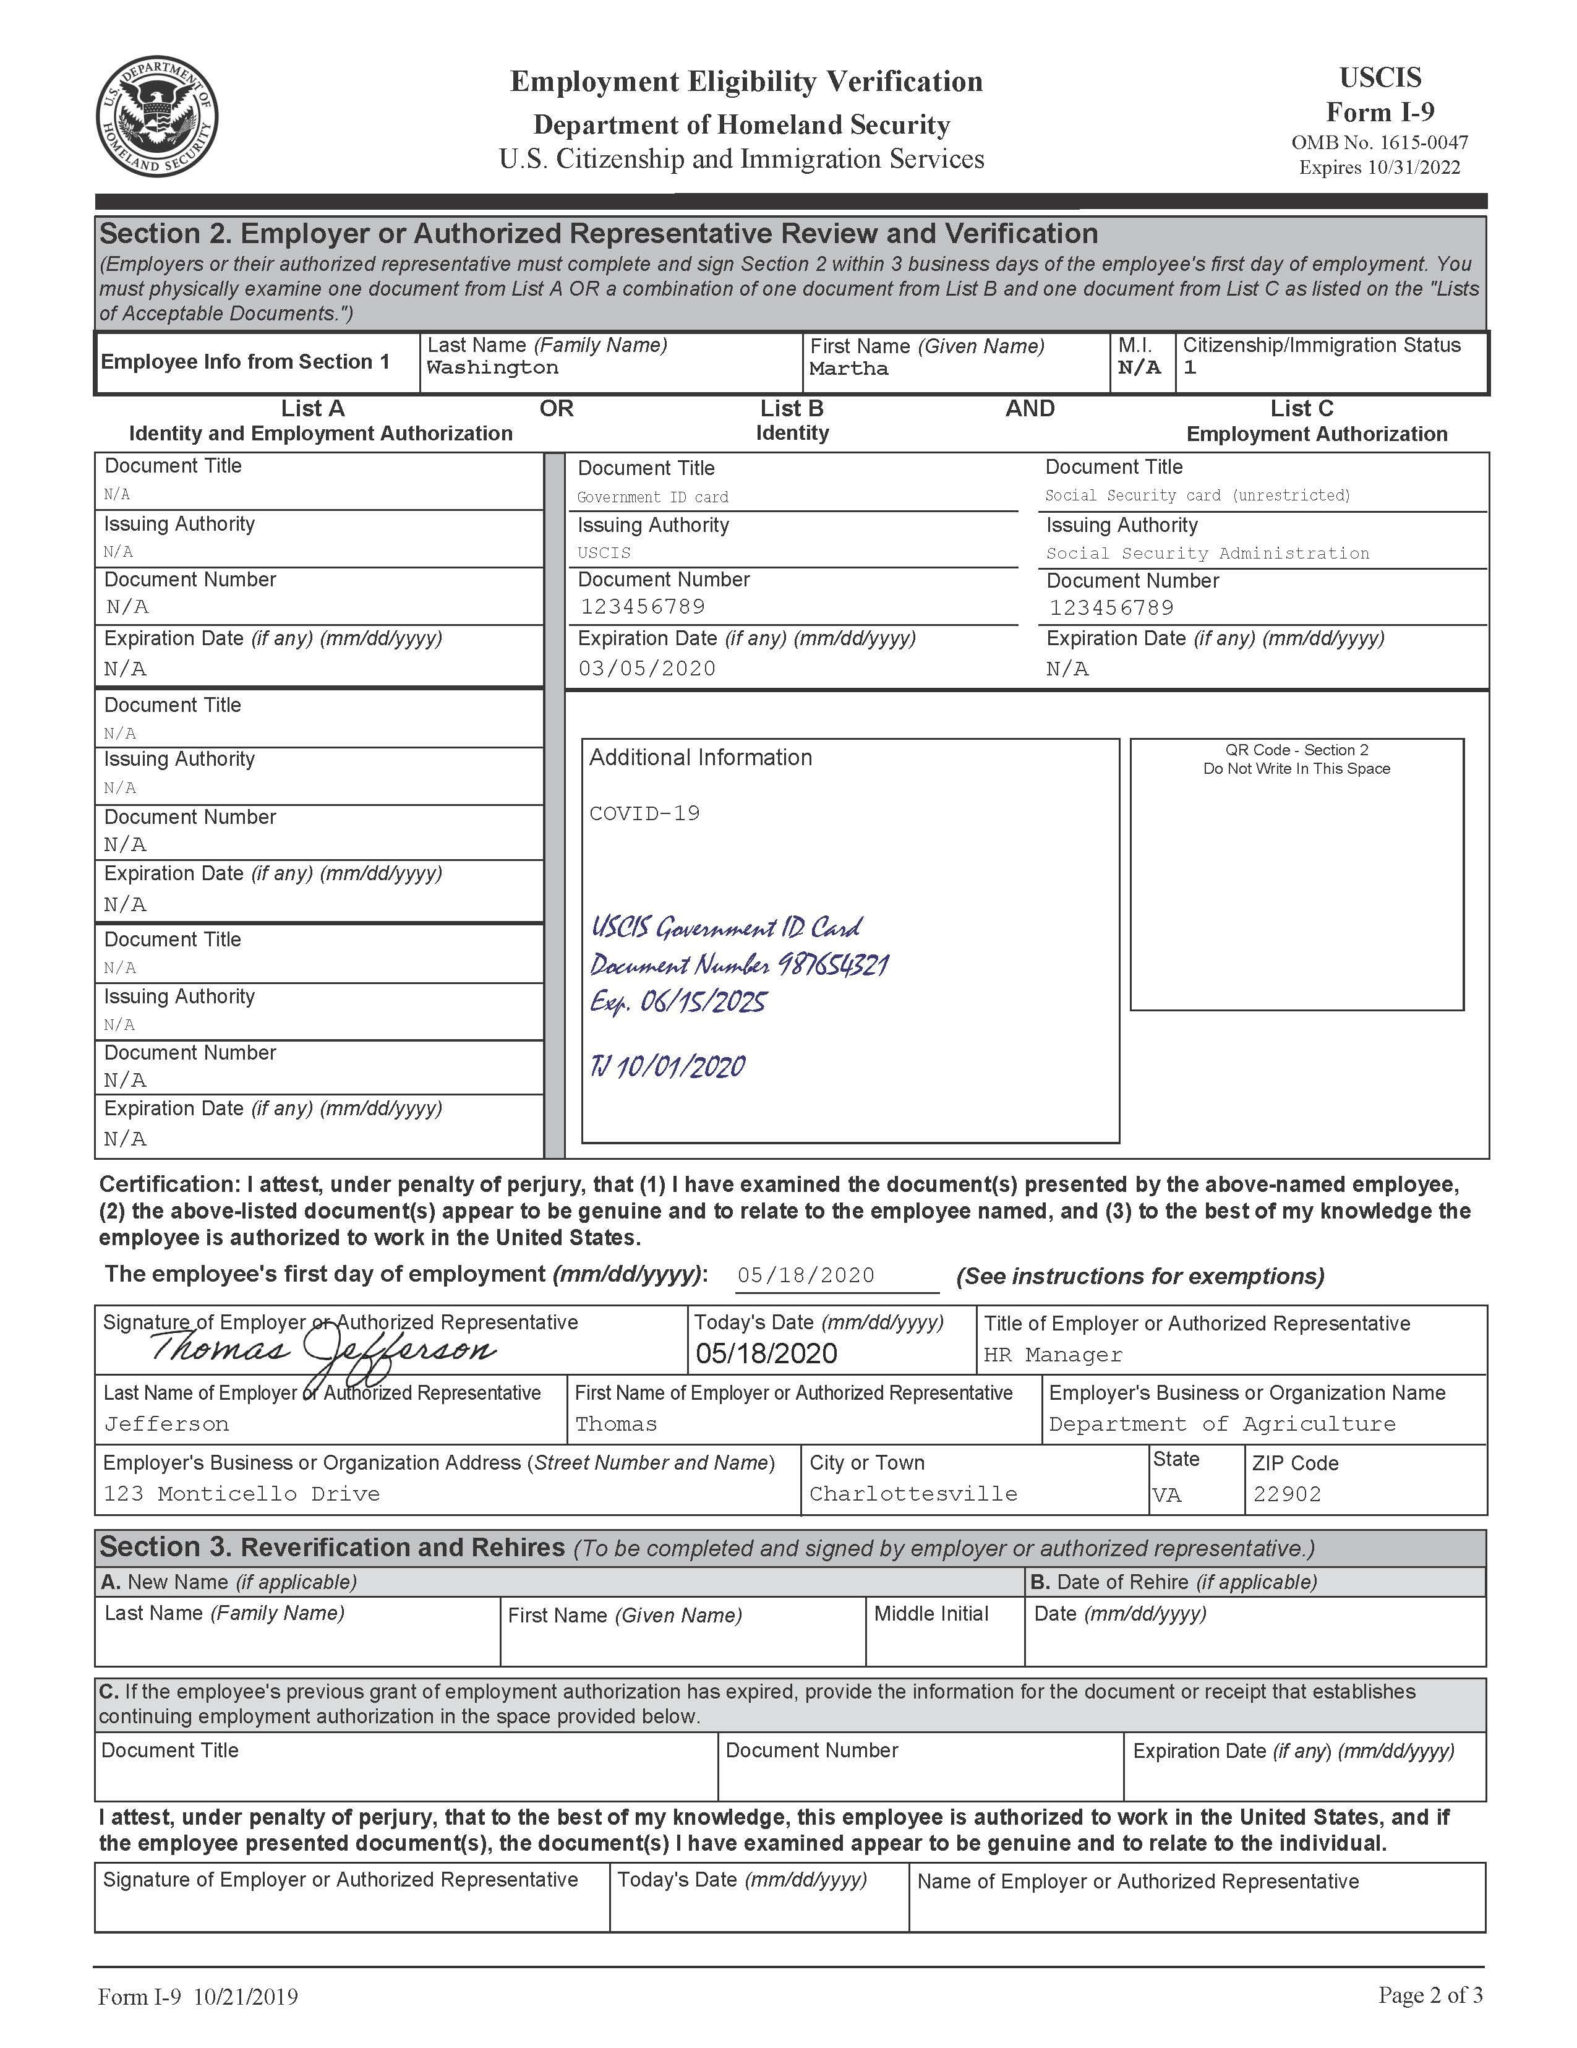 Form I 9 Examples Related To Temporary Covid 19 Policies